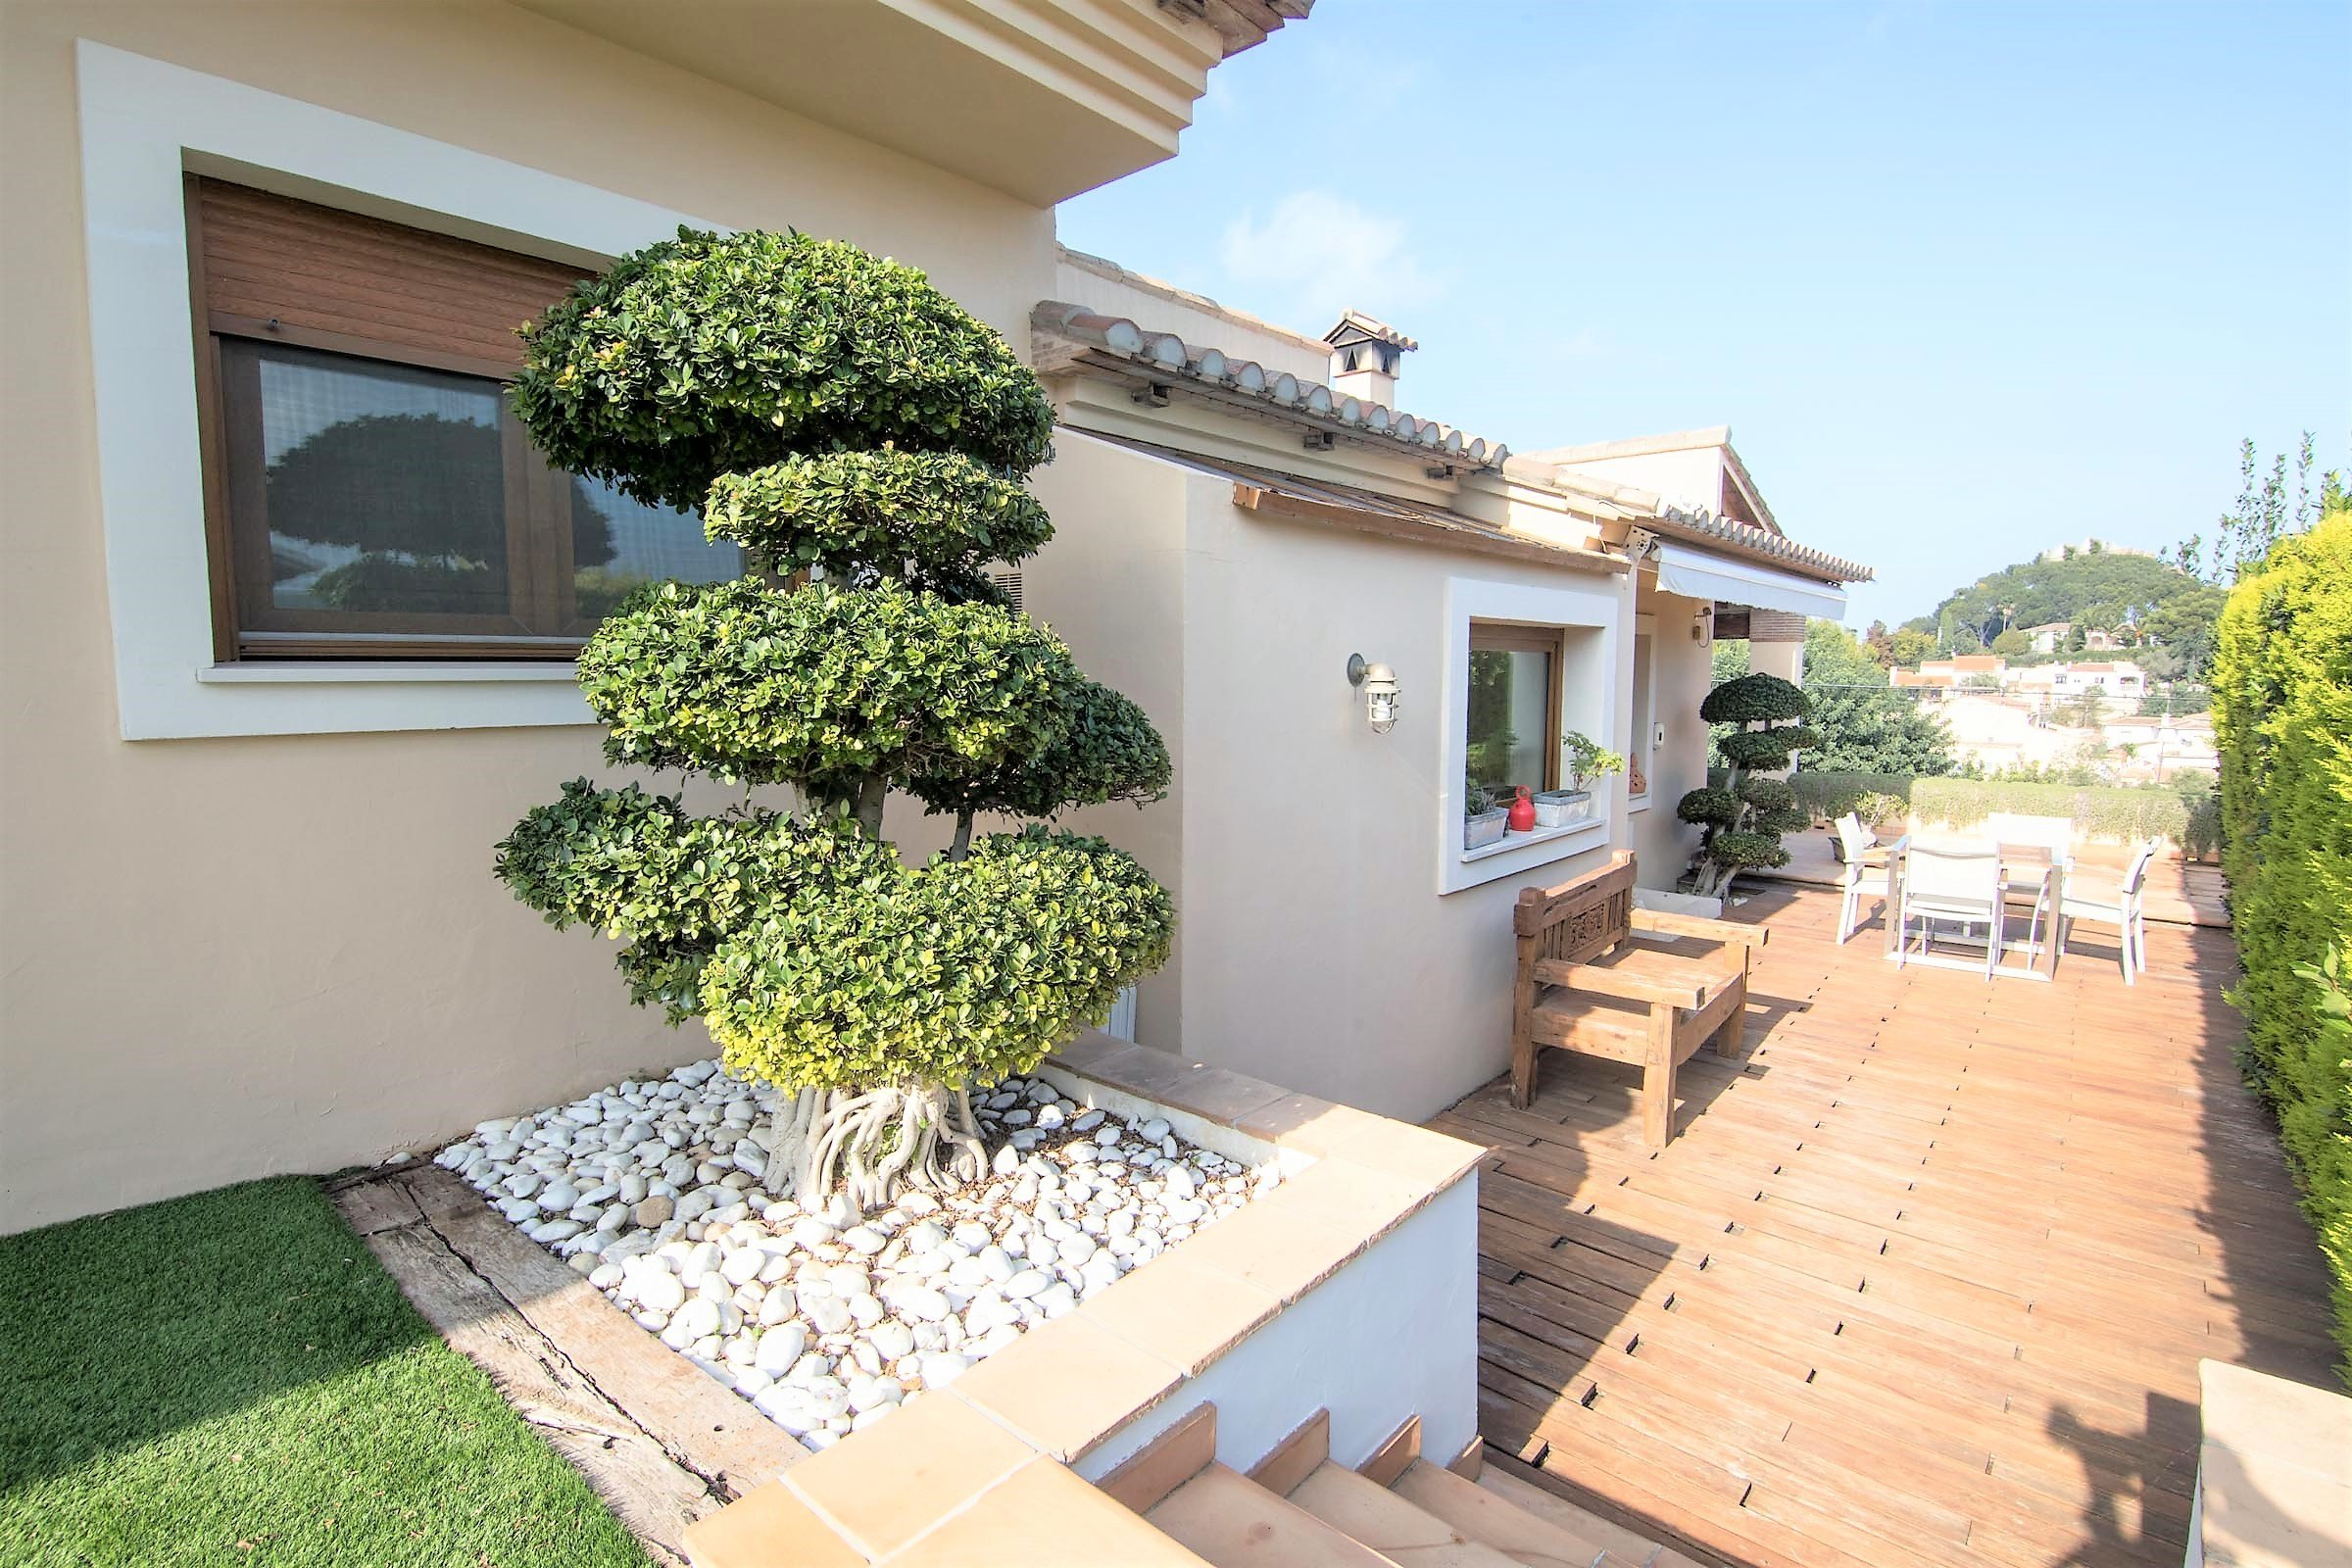 Photogallery - 3 - Vives Pons Homes